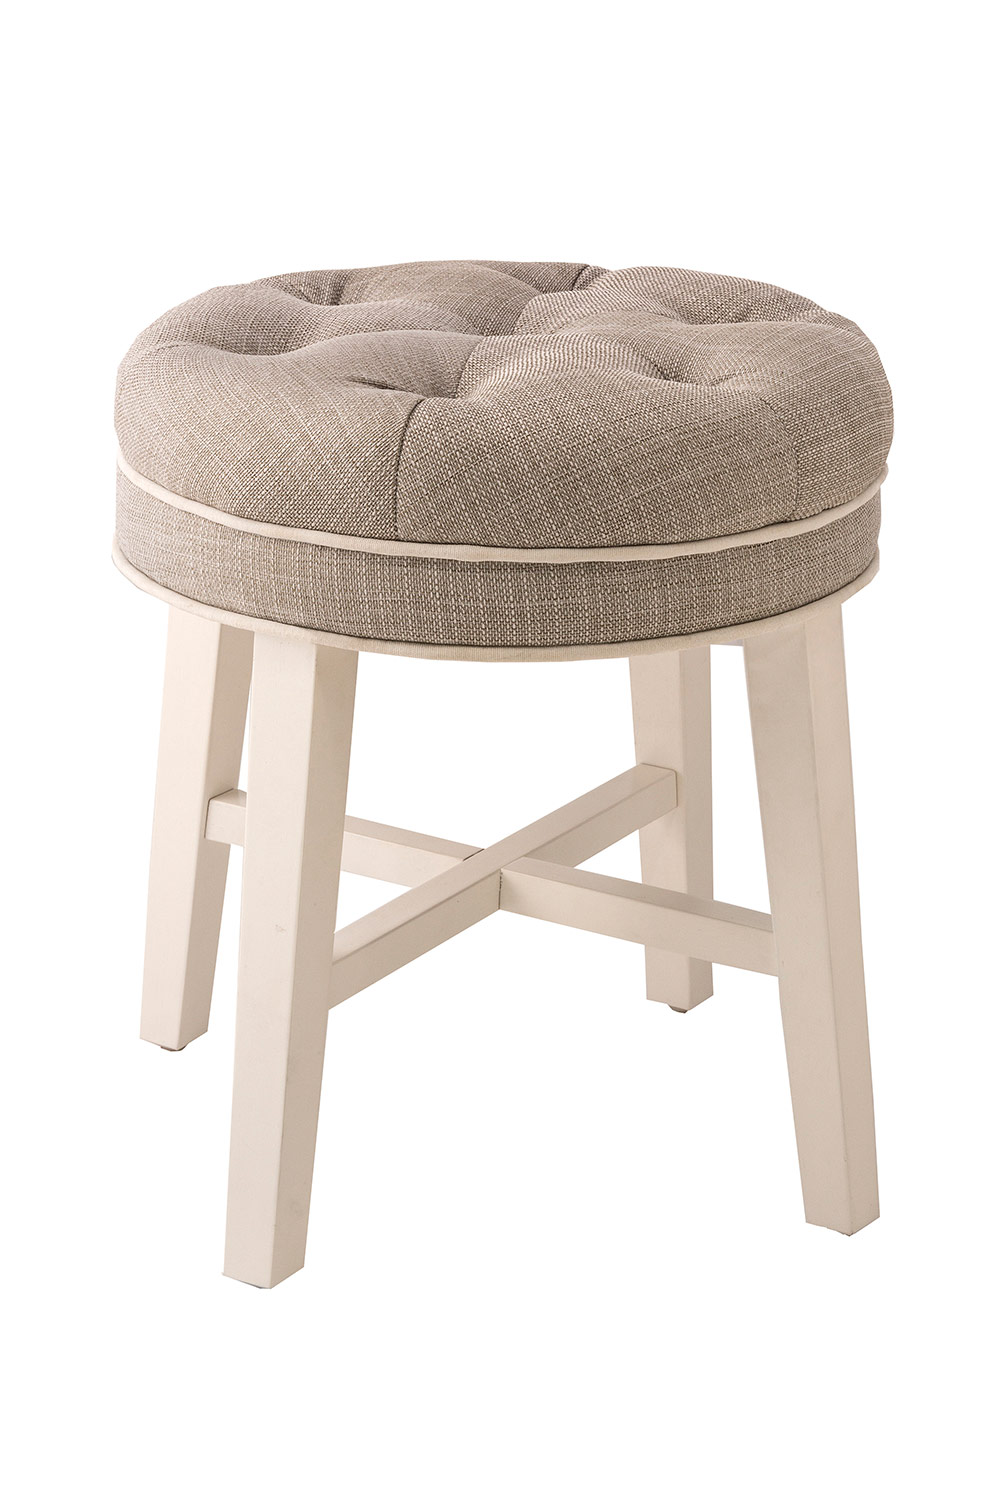 Hillsdale Sophia Vanity Stool with Linen Gray Fabric - White